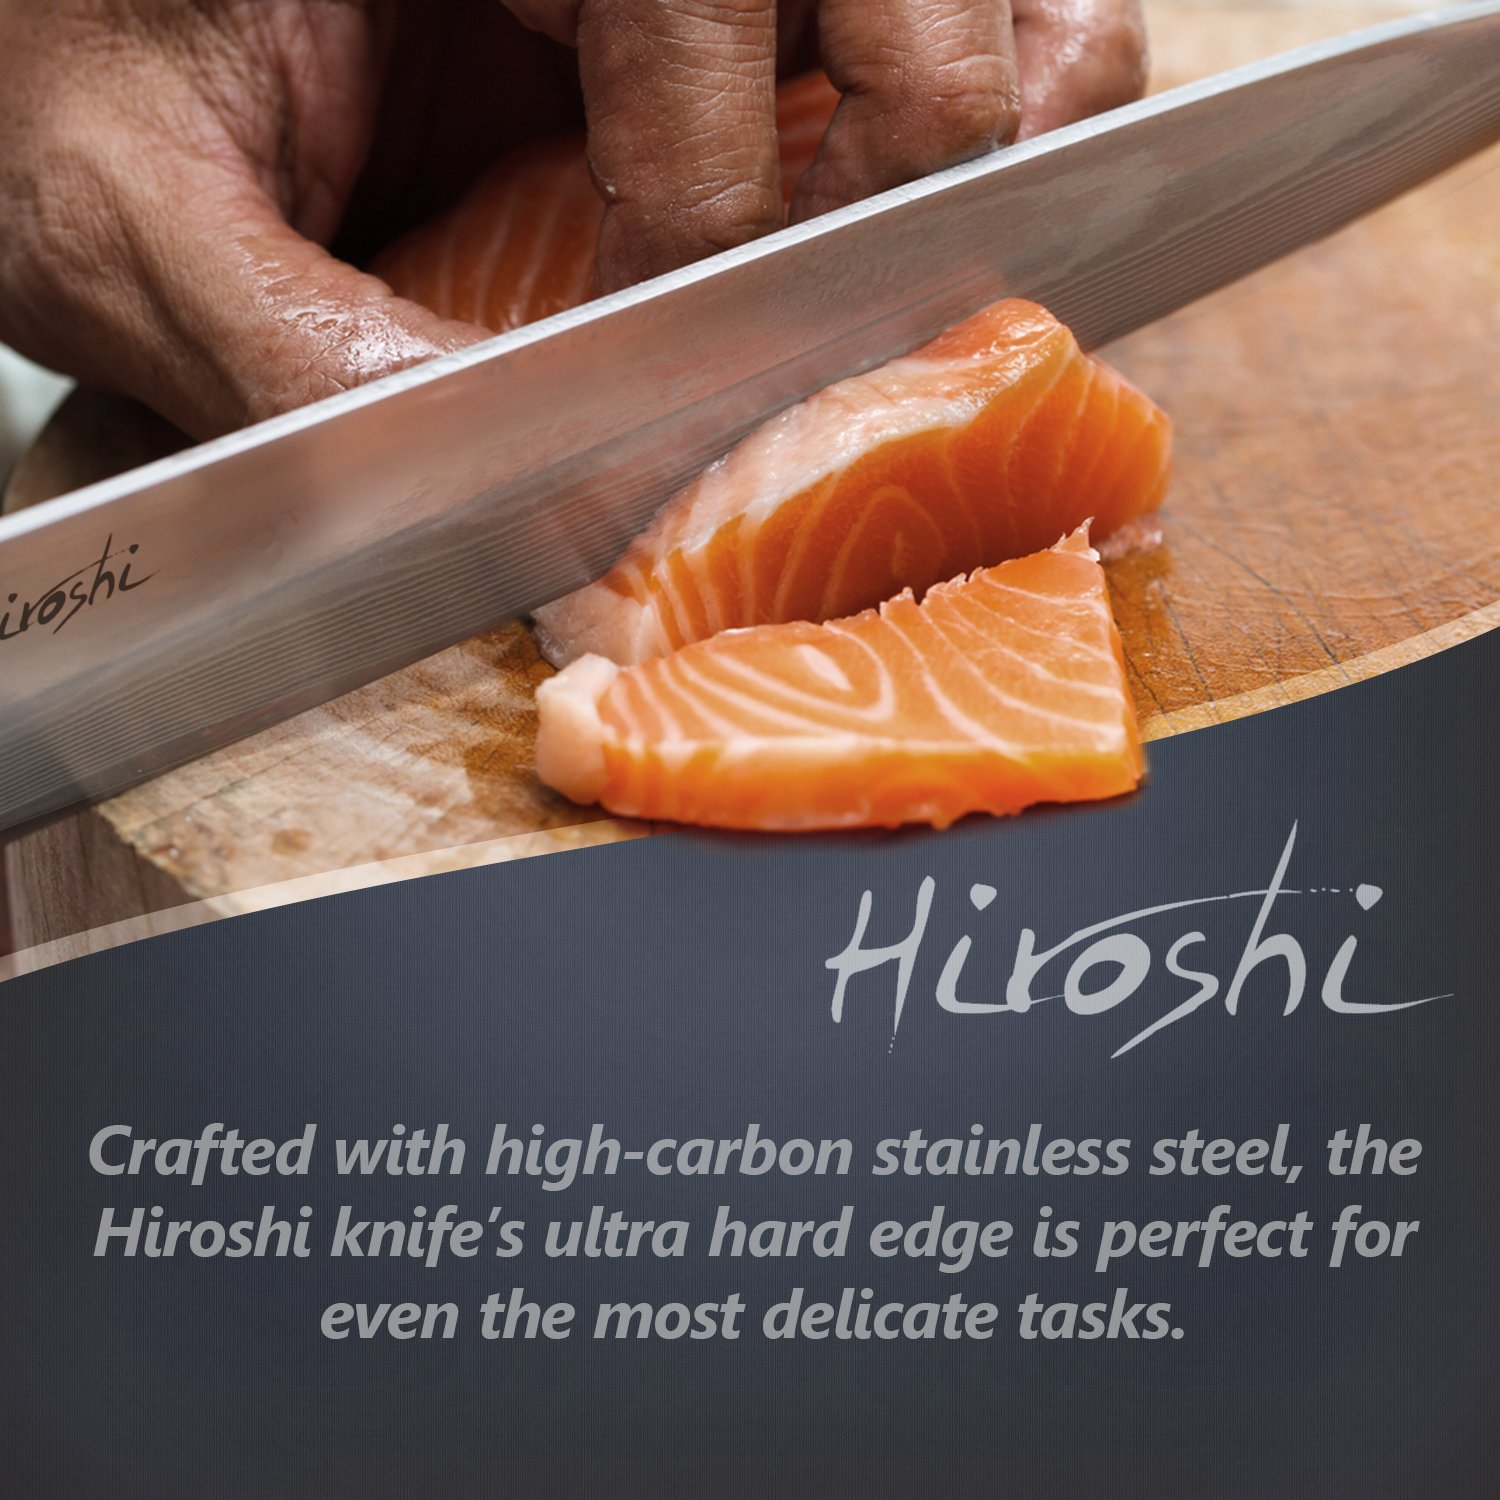 Premium Sushi & Sashimi Chef's Knife – 8'' Ultra High Carbon Damascus Steel – Presented In A Beautiful Gift Box (Black Handle) by HIROSHI (Image #6)